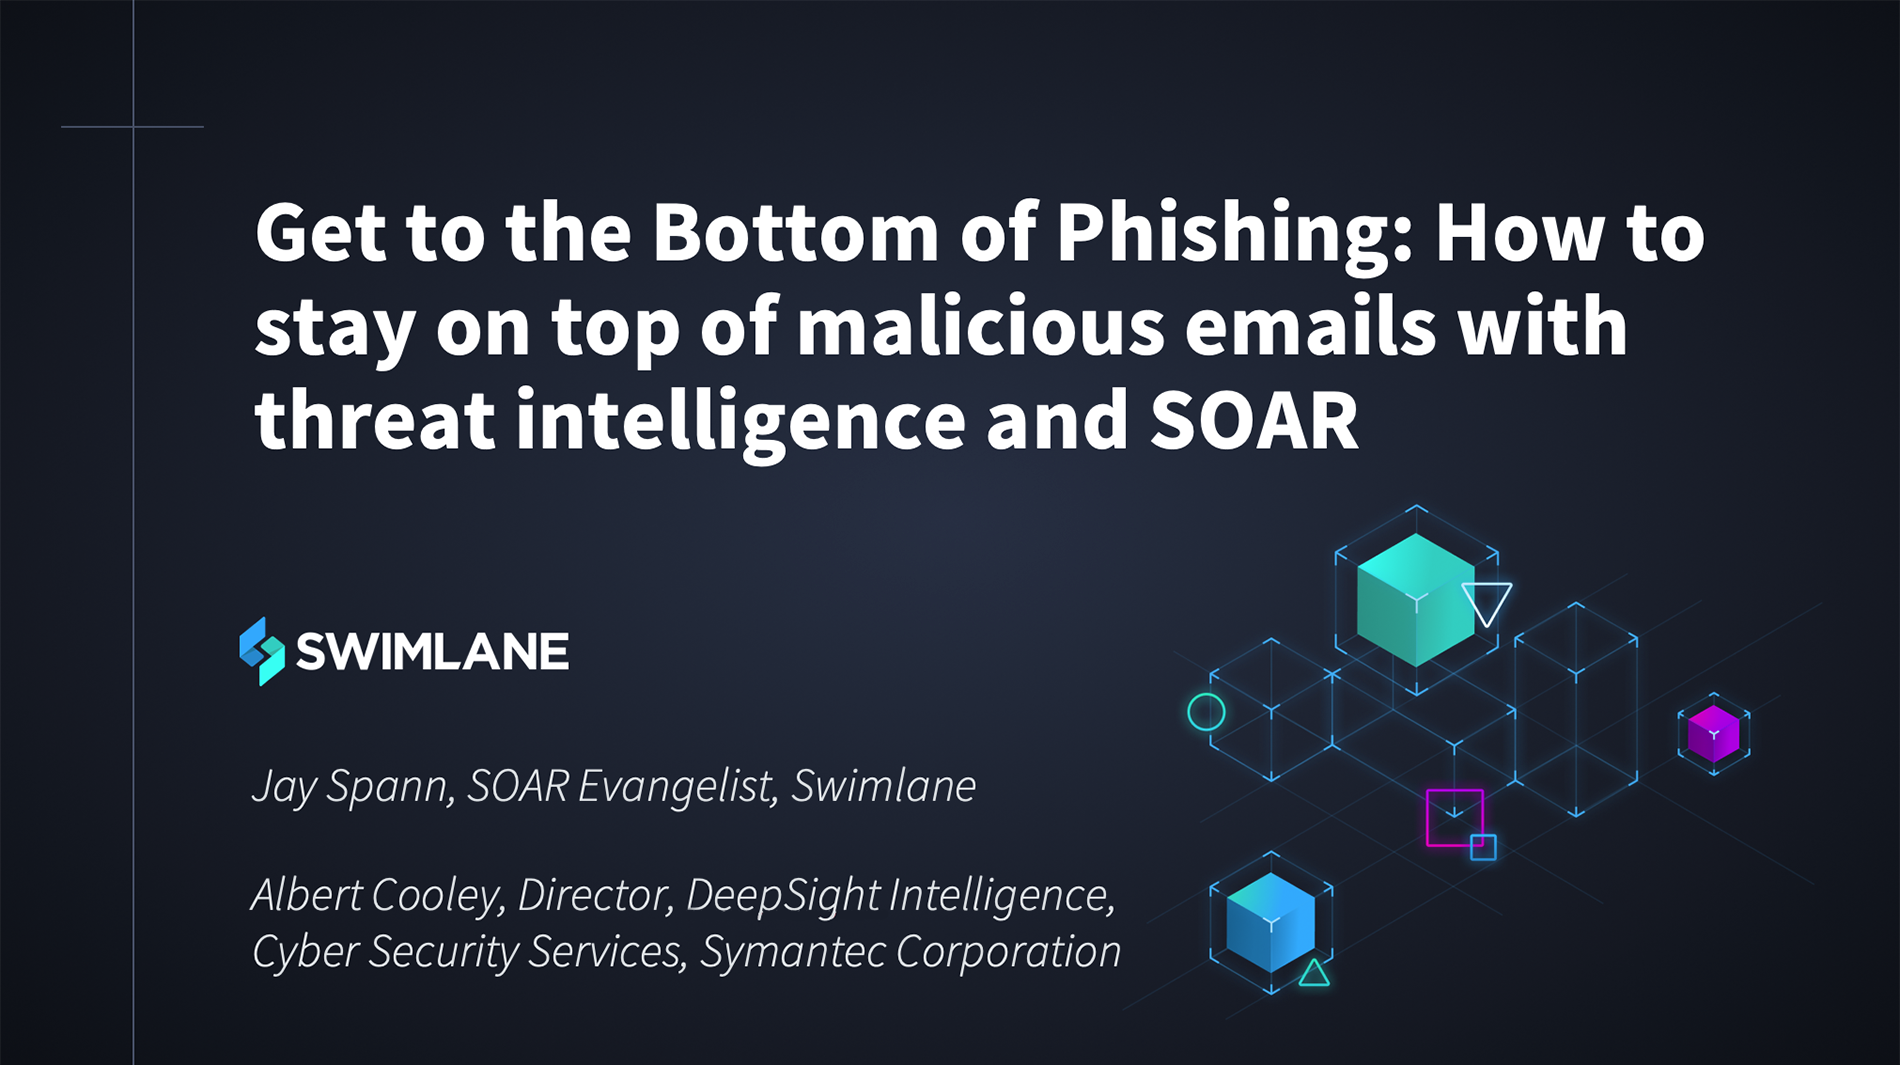 Staying on top of phishing emails with threat intelligence